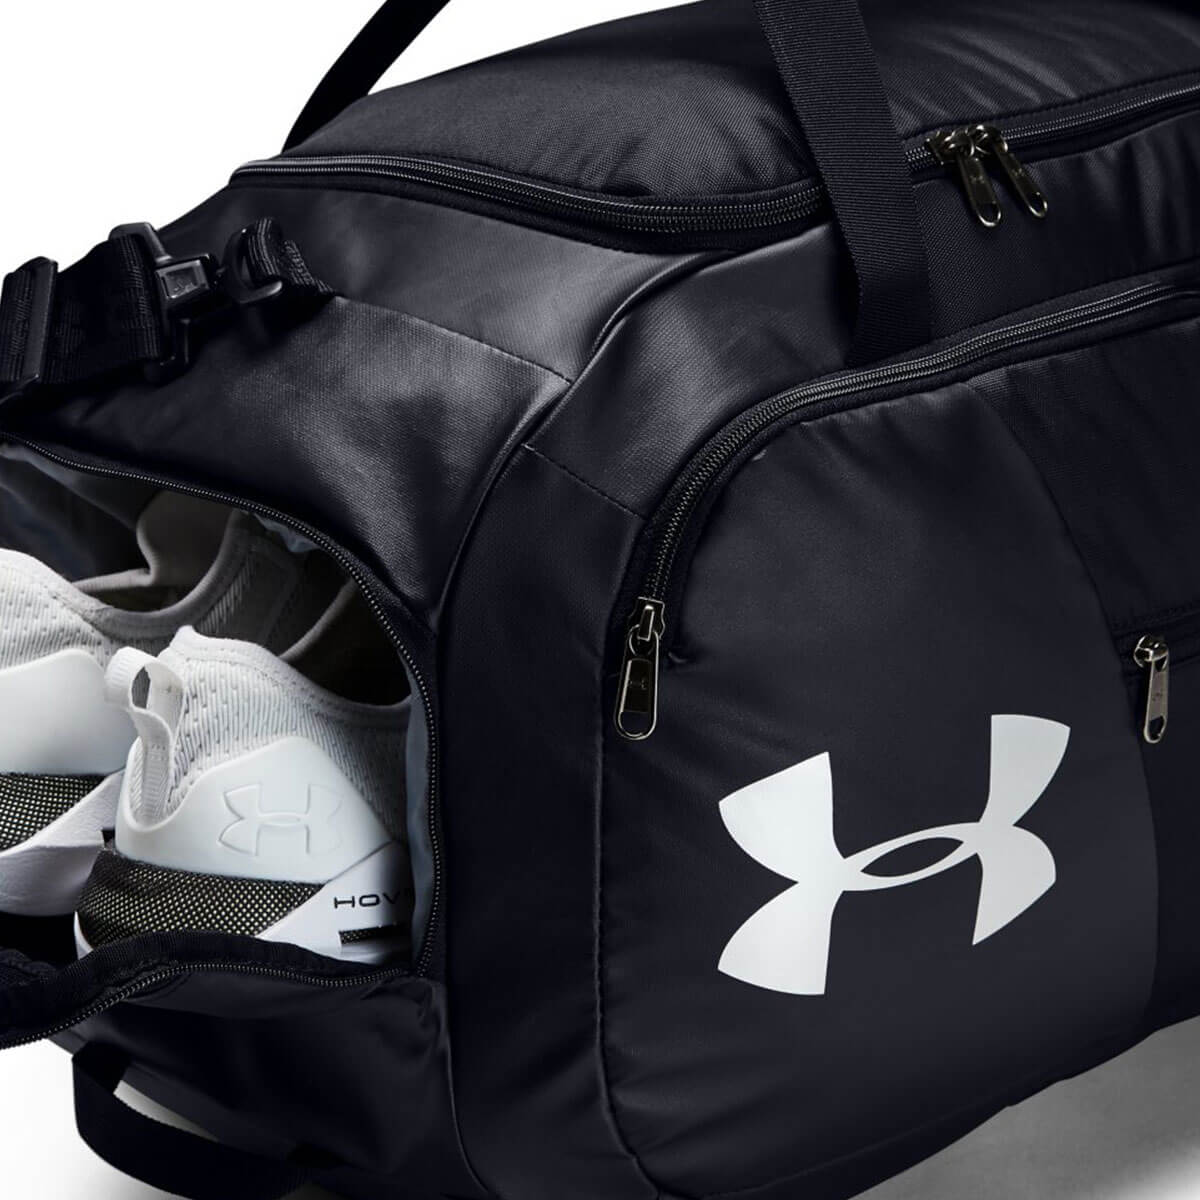 Under Armour Unisex 2019 Undeniable Duffel 4.0 MD Water Resistant Holdall Bag